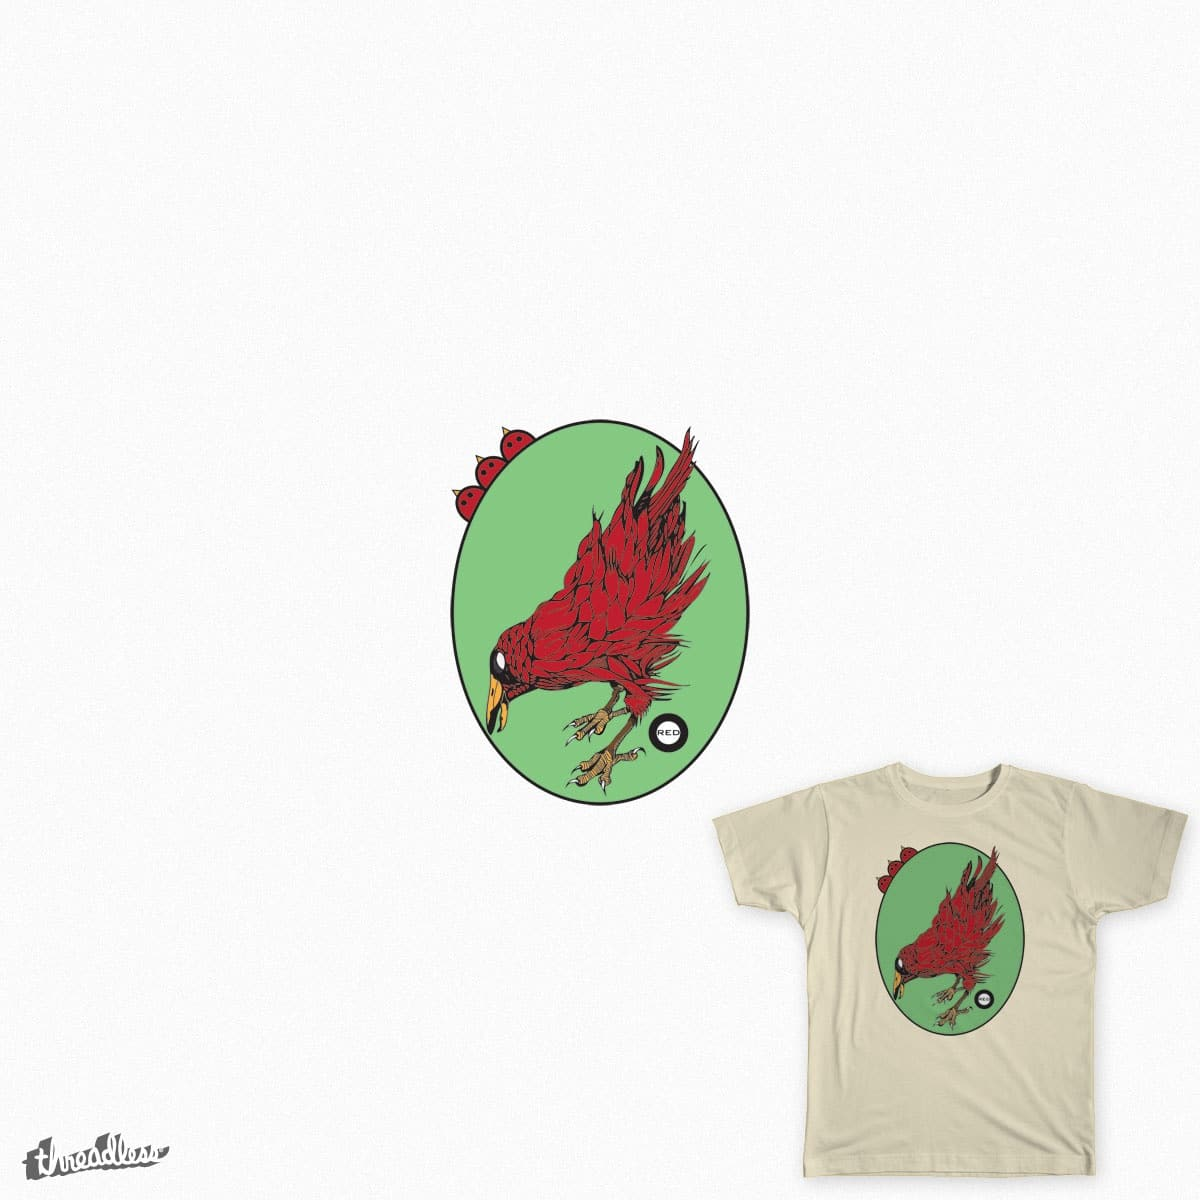 Red Raven by tarahudsonredart on Threadless